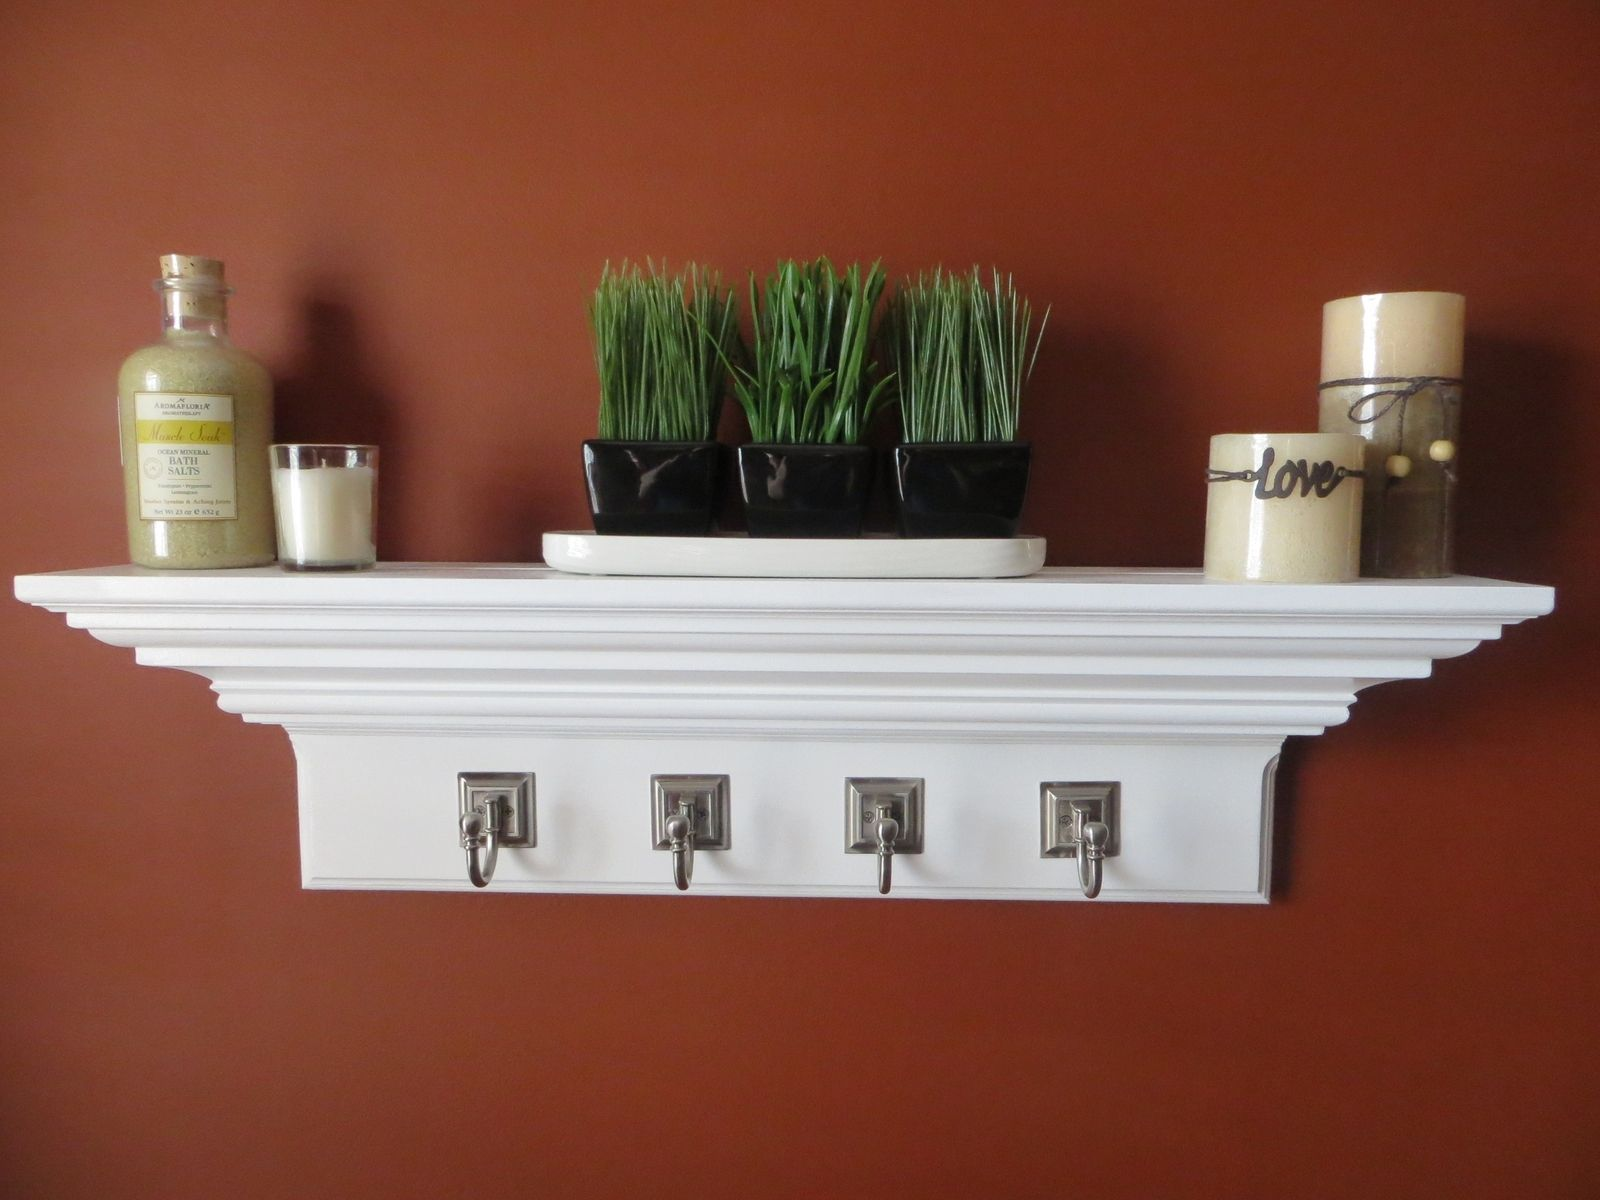 custom 30 crown molding floating wall shelve with hooks by shoreshelves. Black Bedroom Furniture Sets. Home Design Ideas